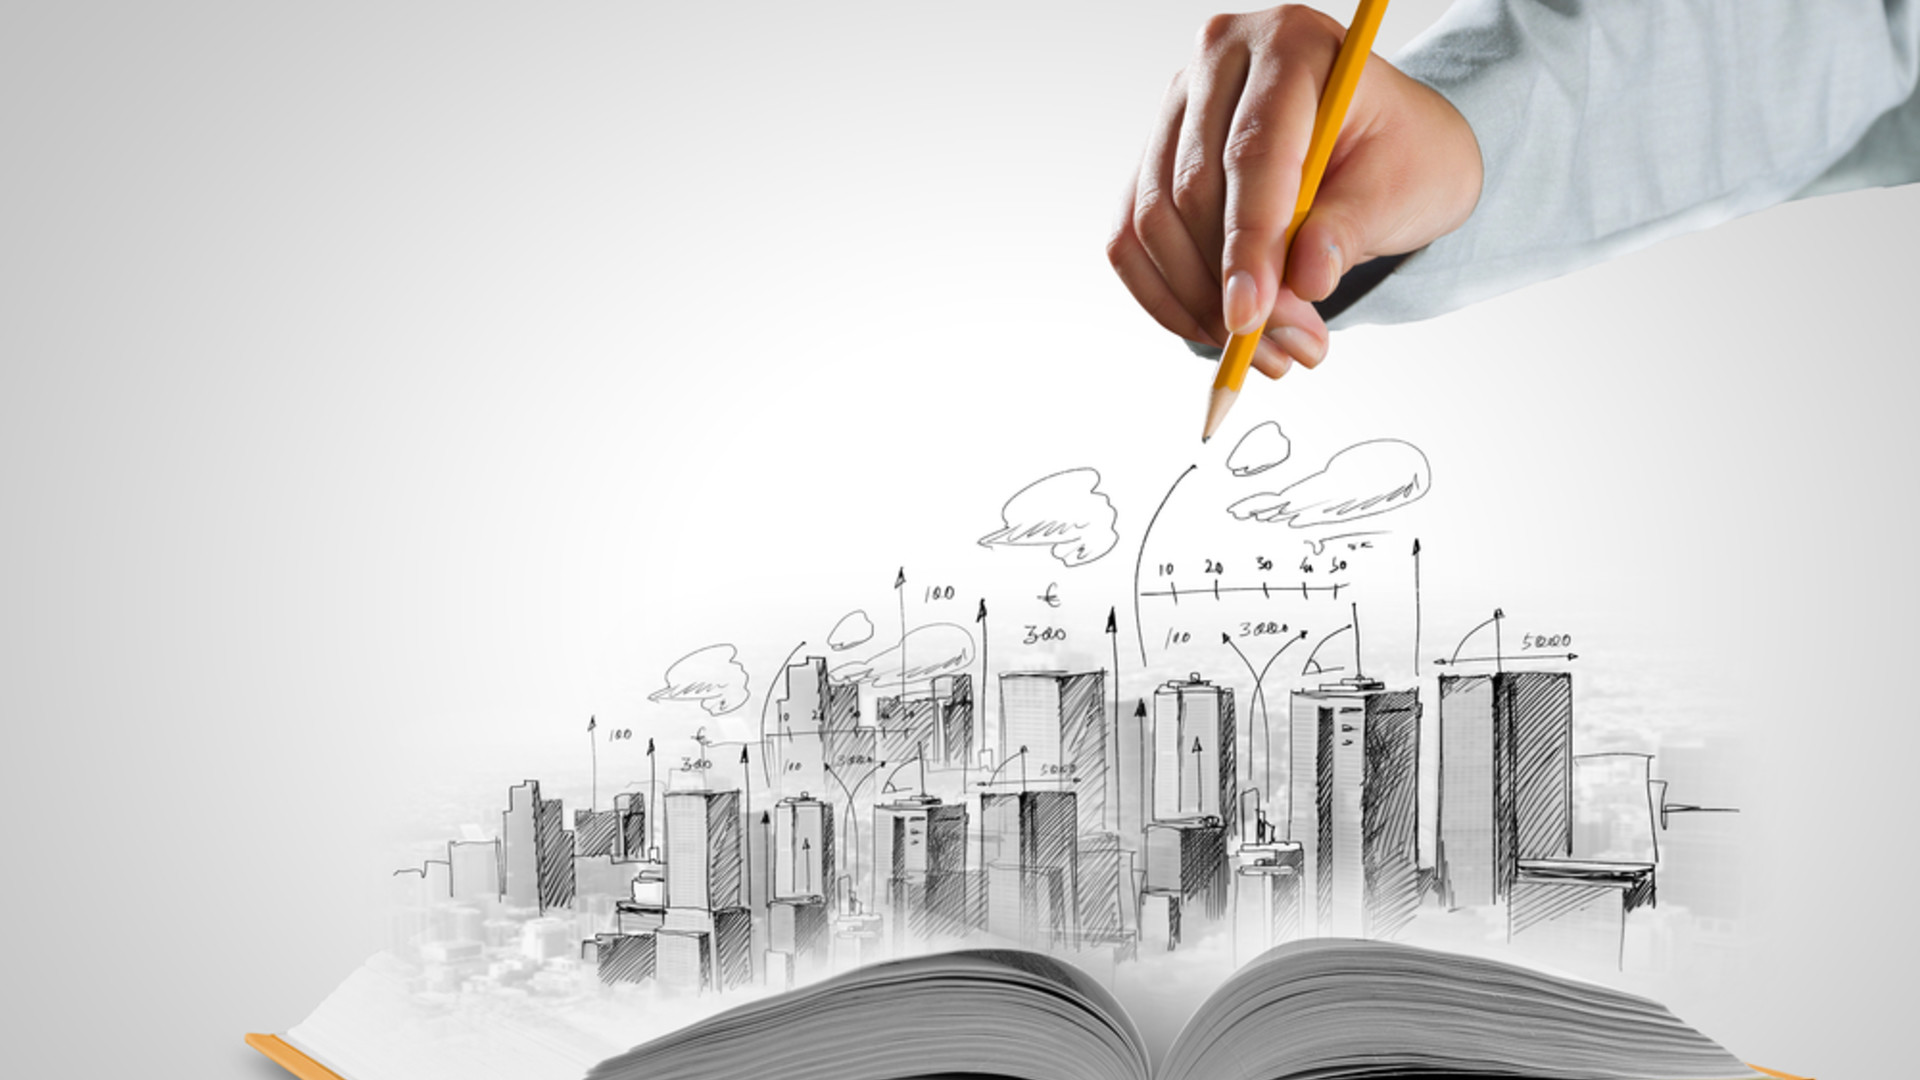 research paper on construction management A significant number of published research papers have done likewise, blaming many of the industry's ills on culture research on project performance has so far focused mainly on the impact of strategic factors, such as procurement routes, construction methods and management techniques on.